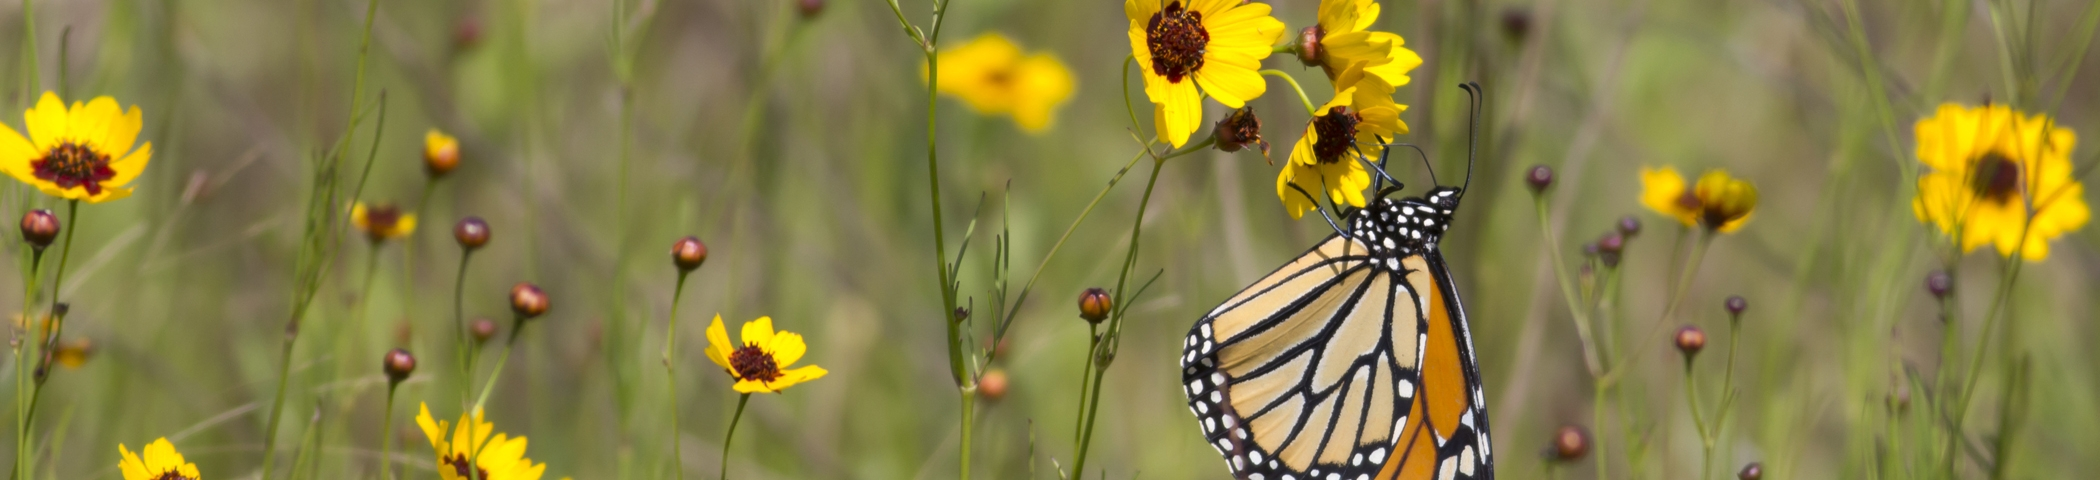 Monarchs are a key prairie species and rely on pollinator plants  Photo by Chuck Duplant